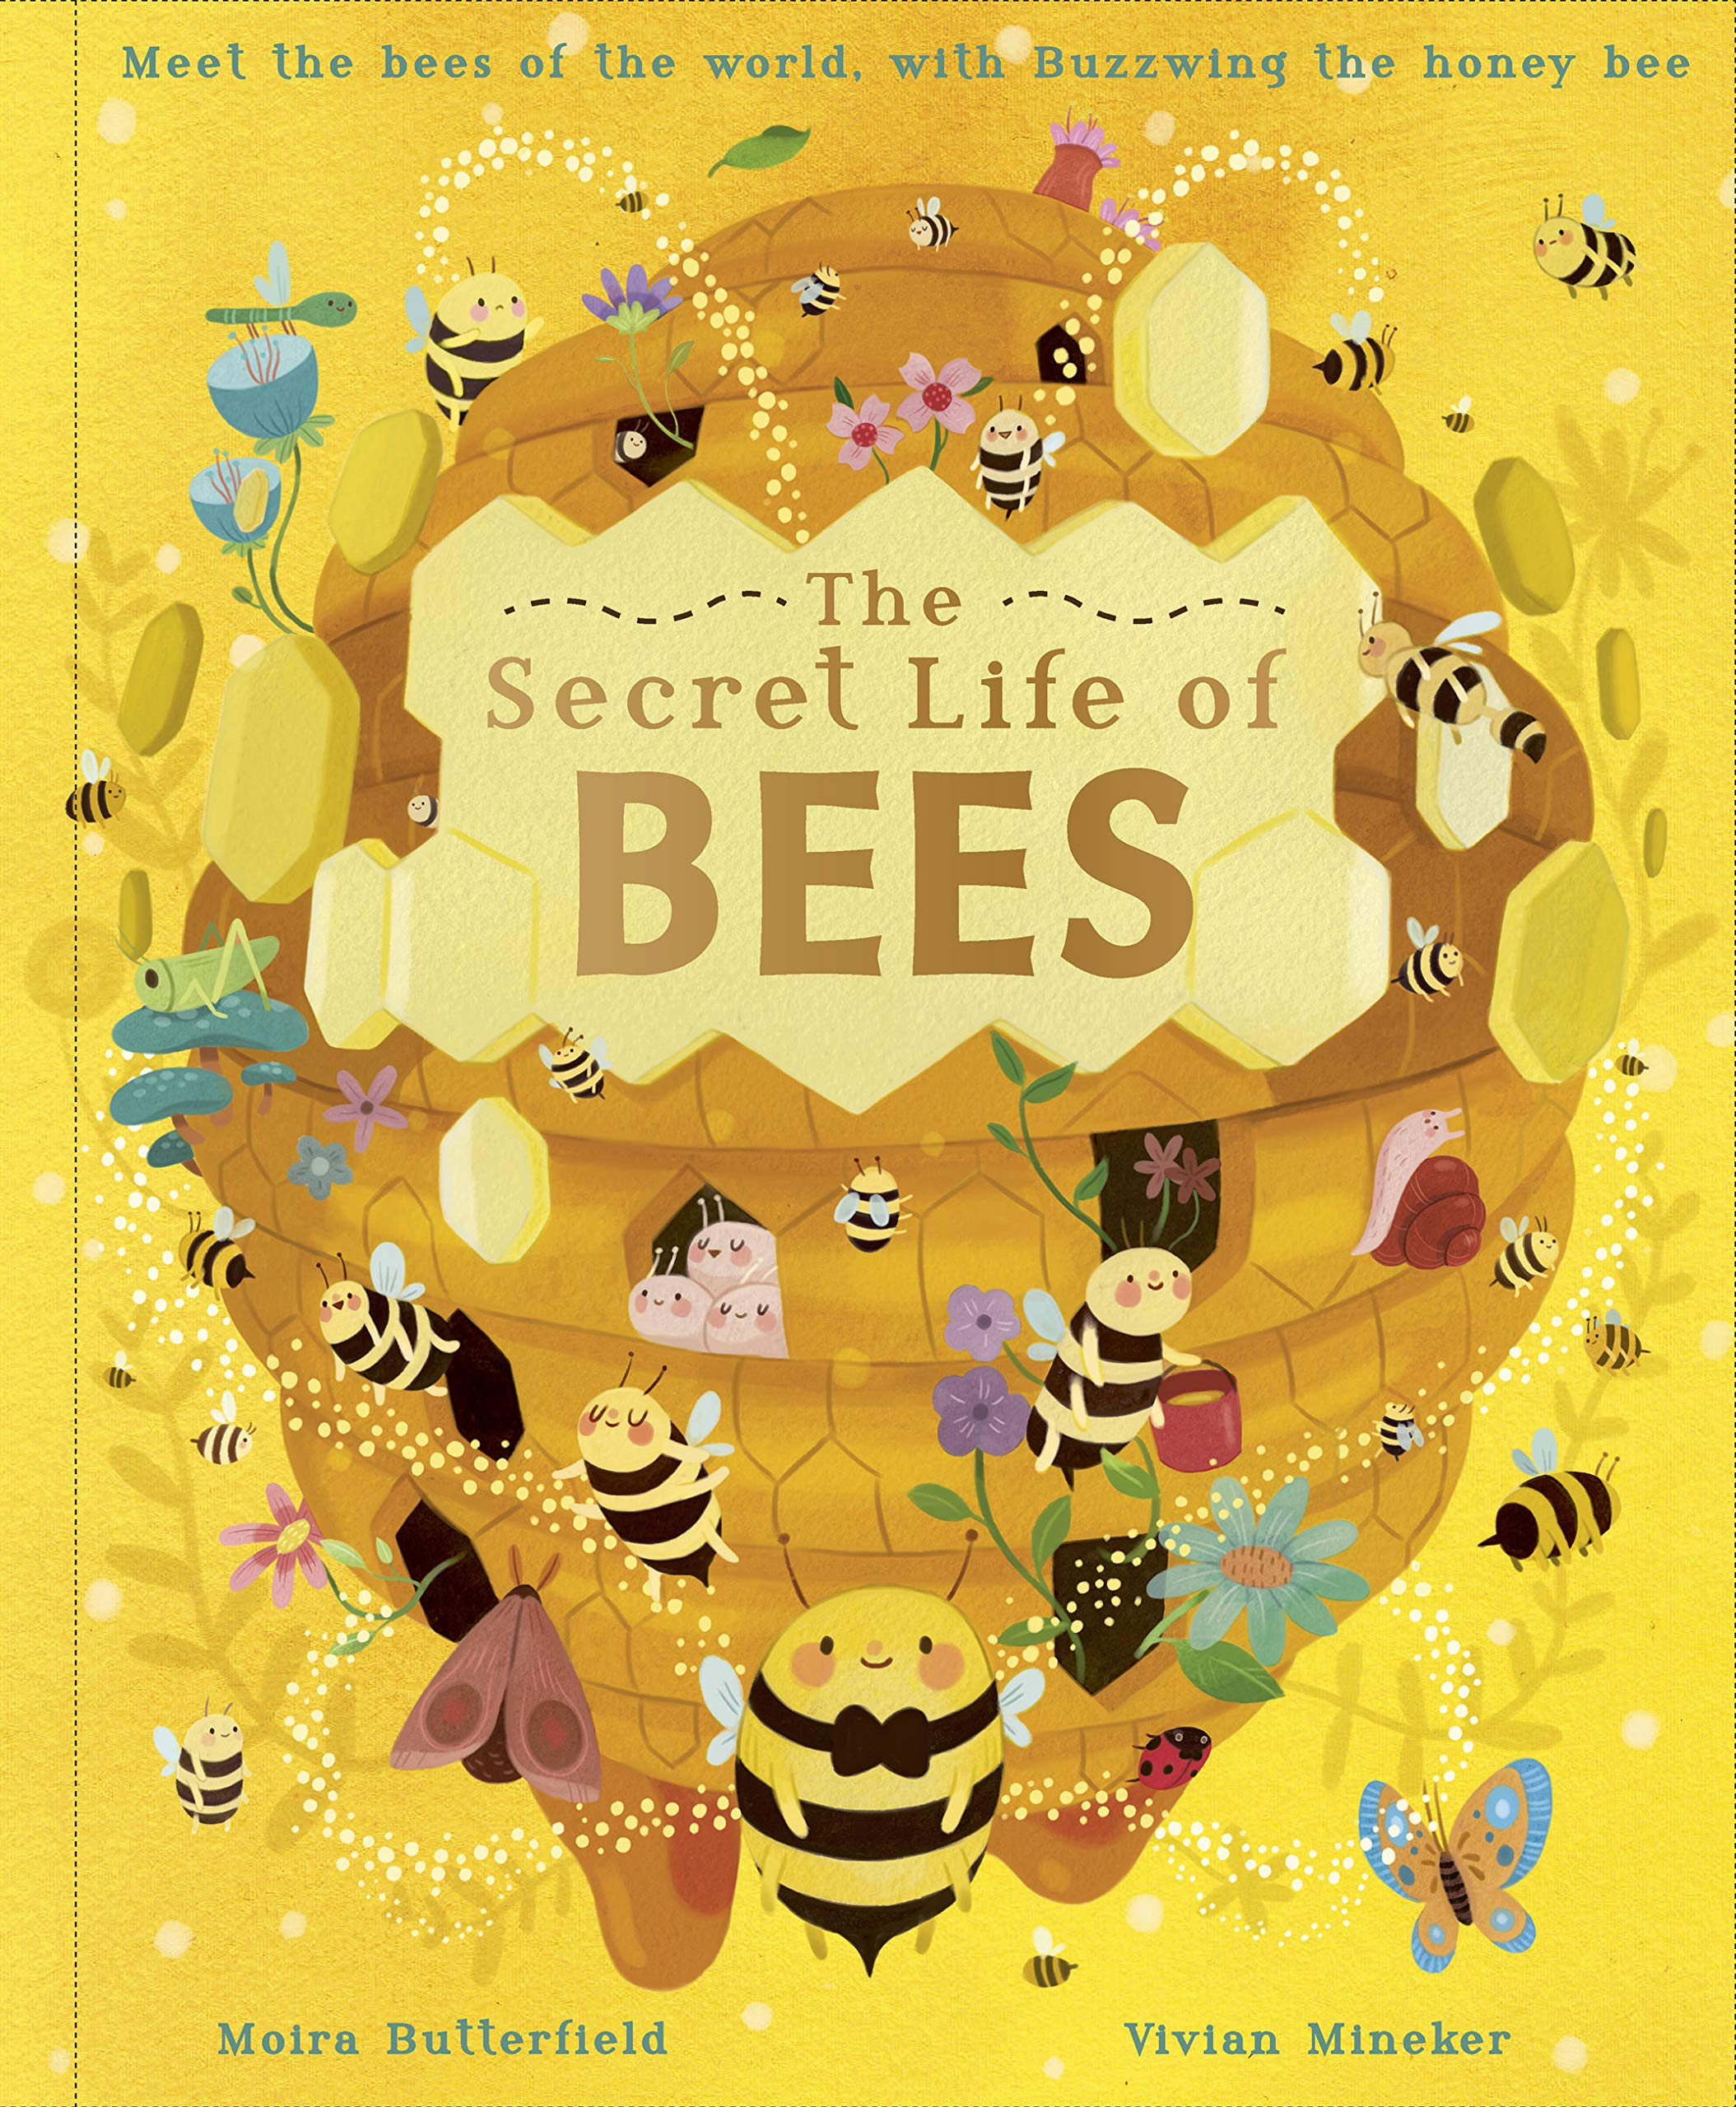 The Secret Life of Bees: Meet the Bees of the World, with Buzzwing the Honey Bee